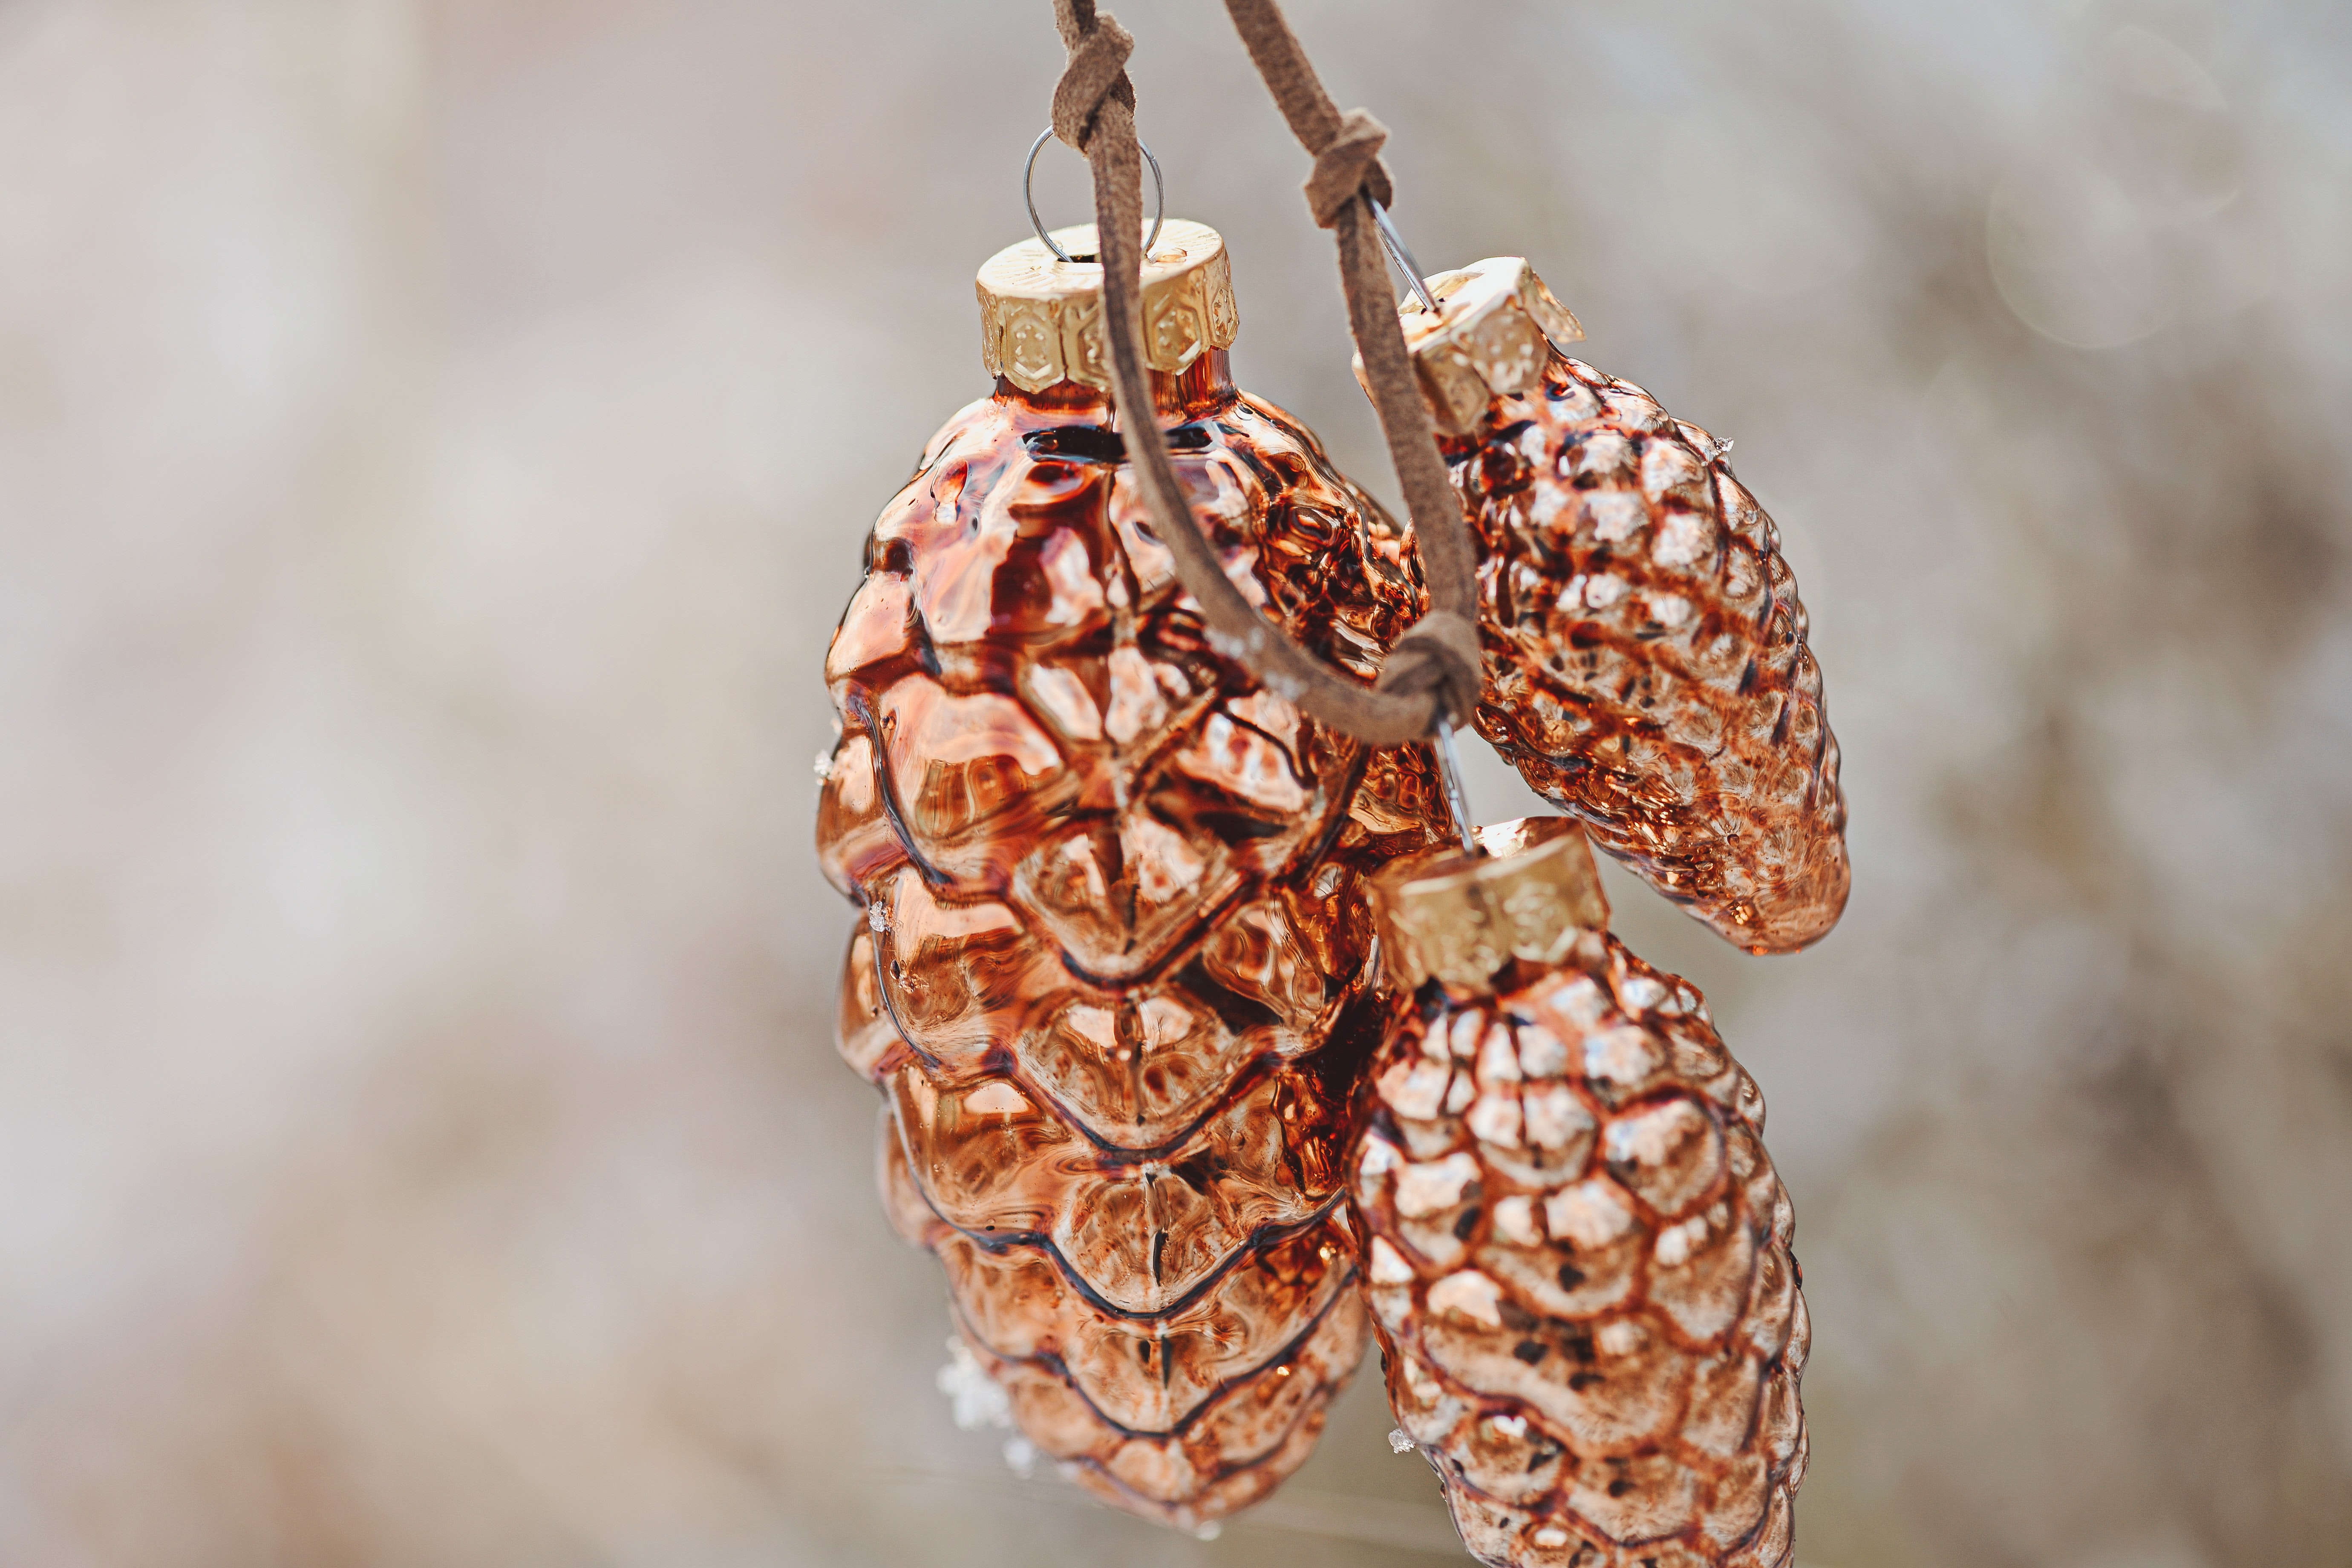 tilt shift photography of three brown ceramic ornaments